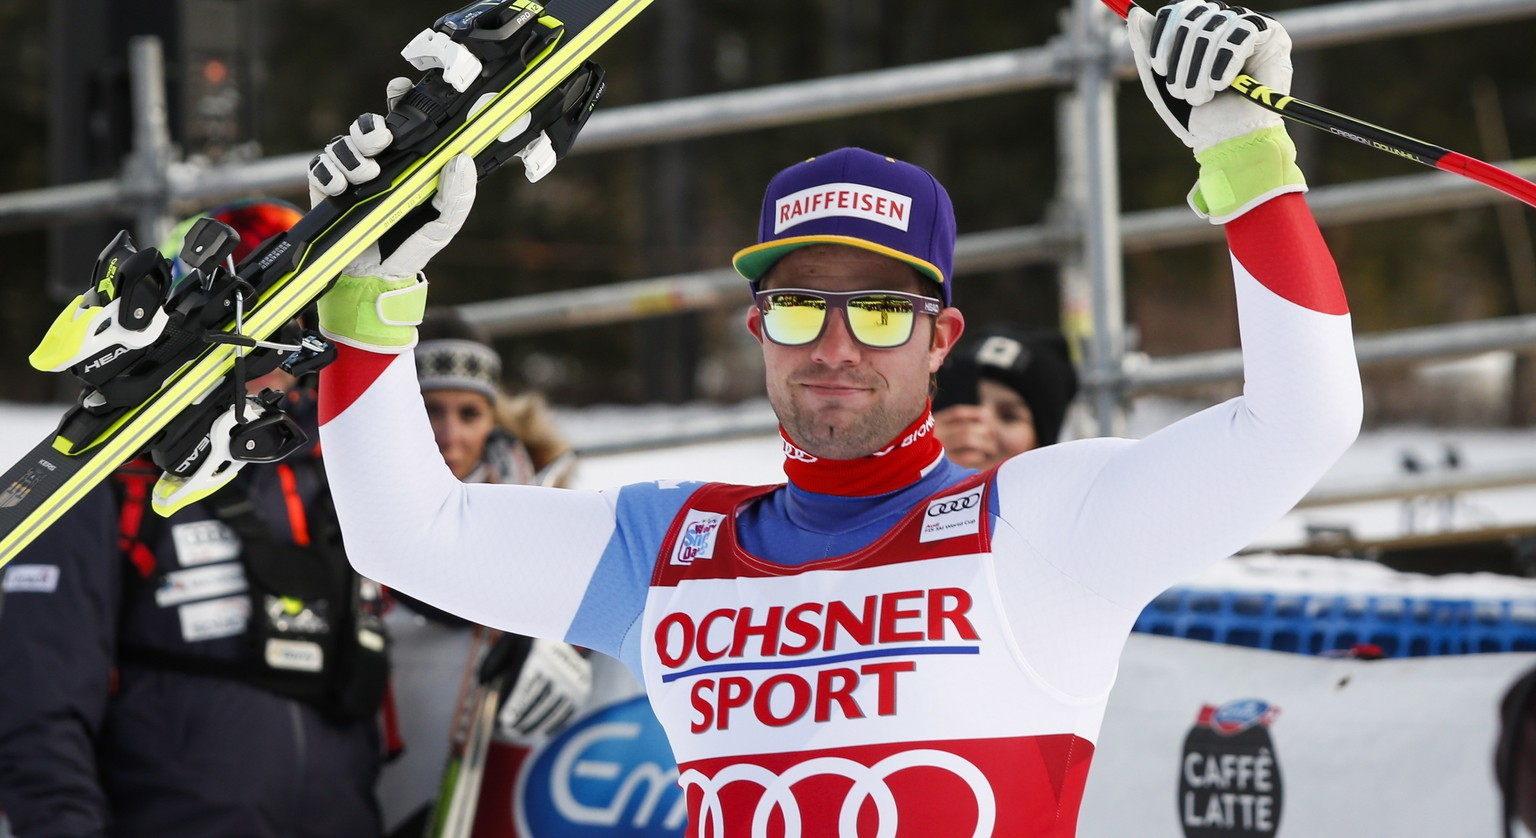 Switzerland's Beat Feuz celebrates his first place finish following the men's World Cup downhill ski race at Lake Louise, Alberta, Saturday, Nov. 25, 2017. (Jeff McIntosh/The Canadian Press via AP)